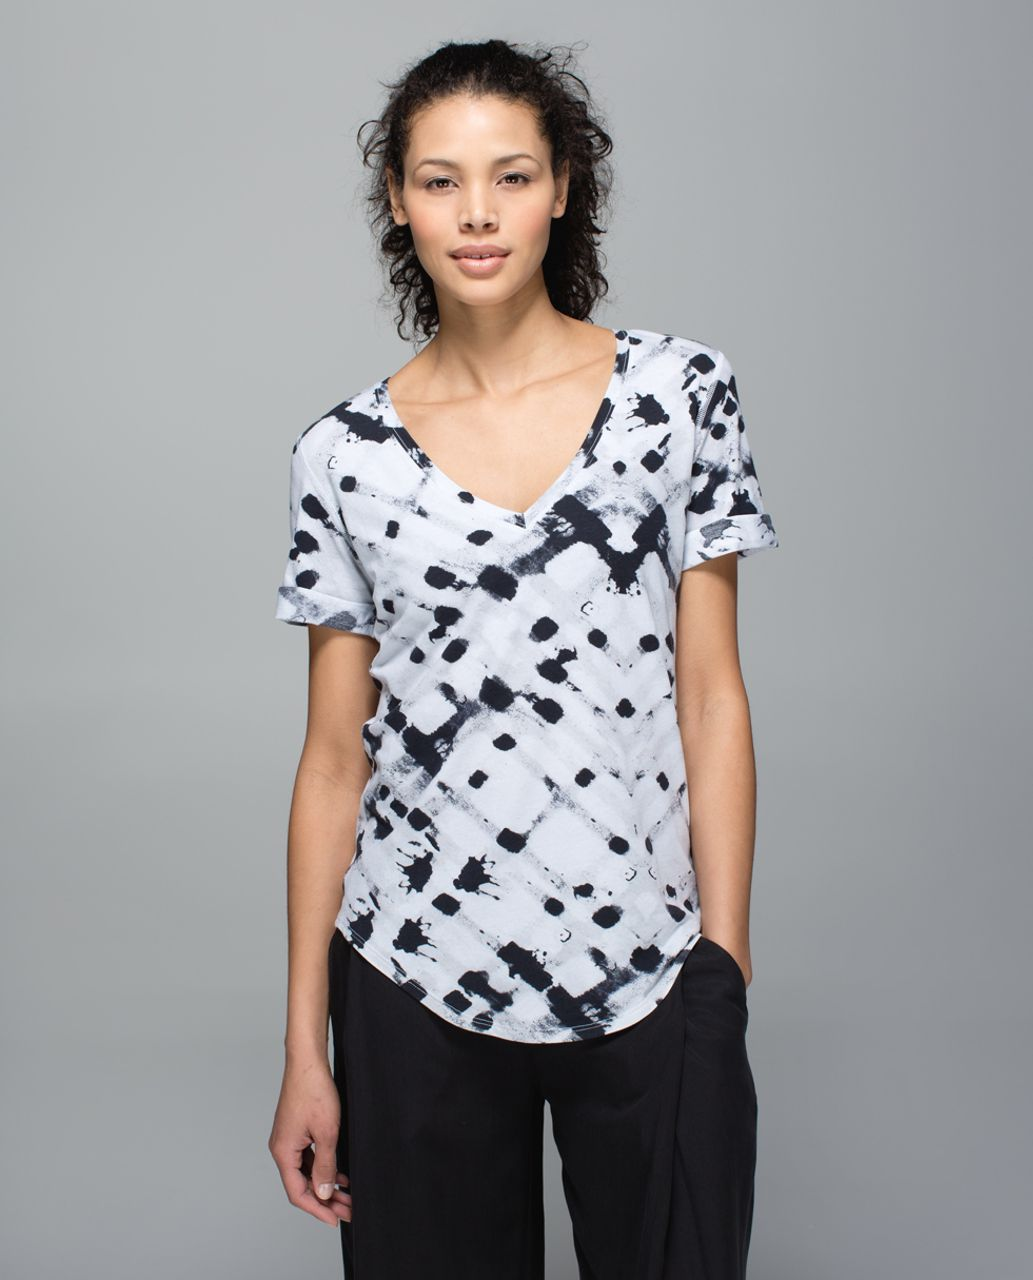 Lululemon Love Tee II - Ghost Weave White Black